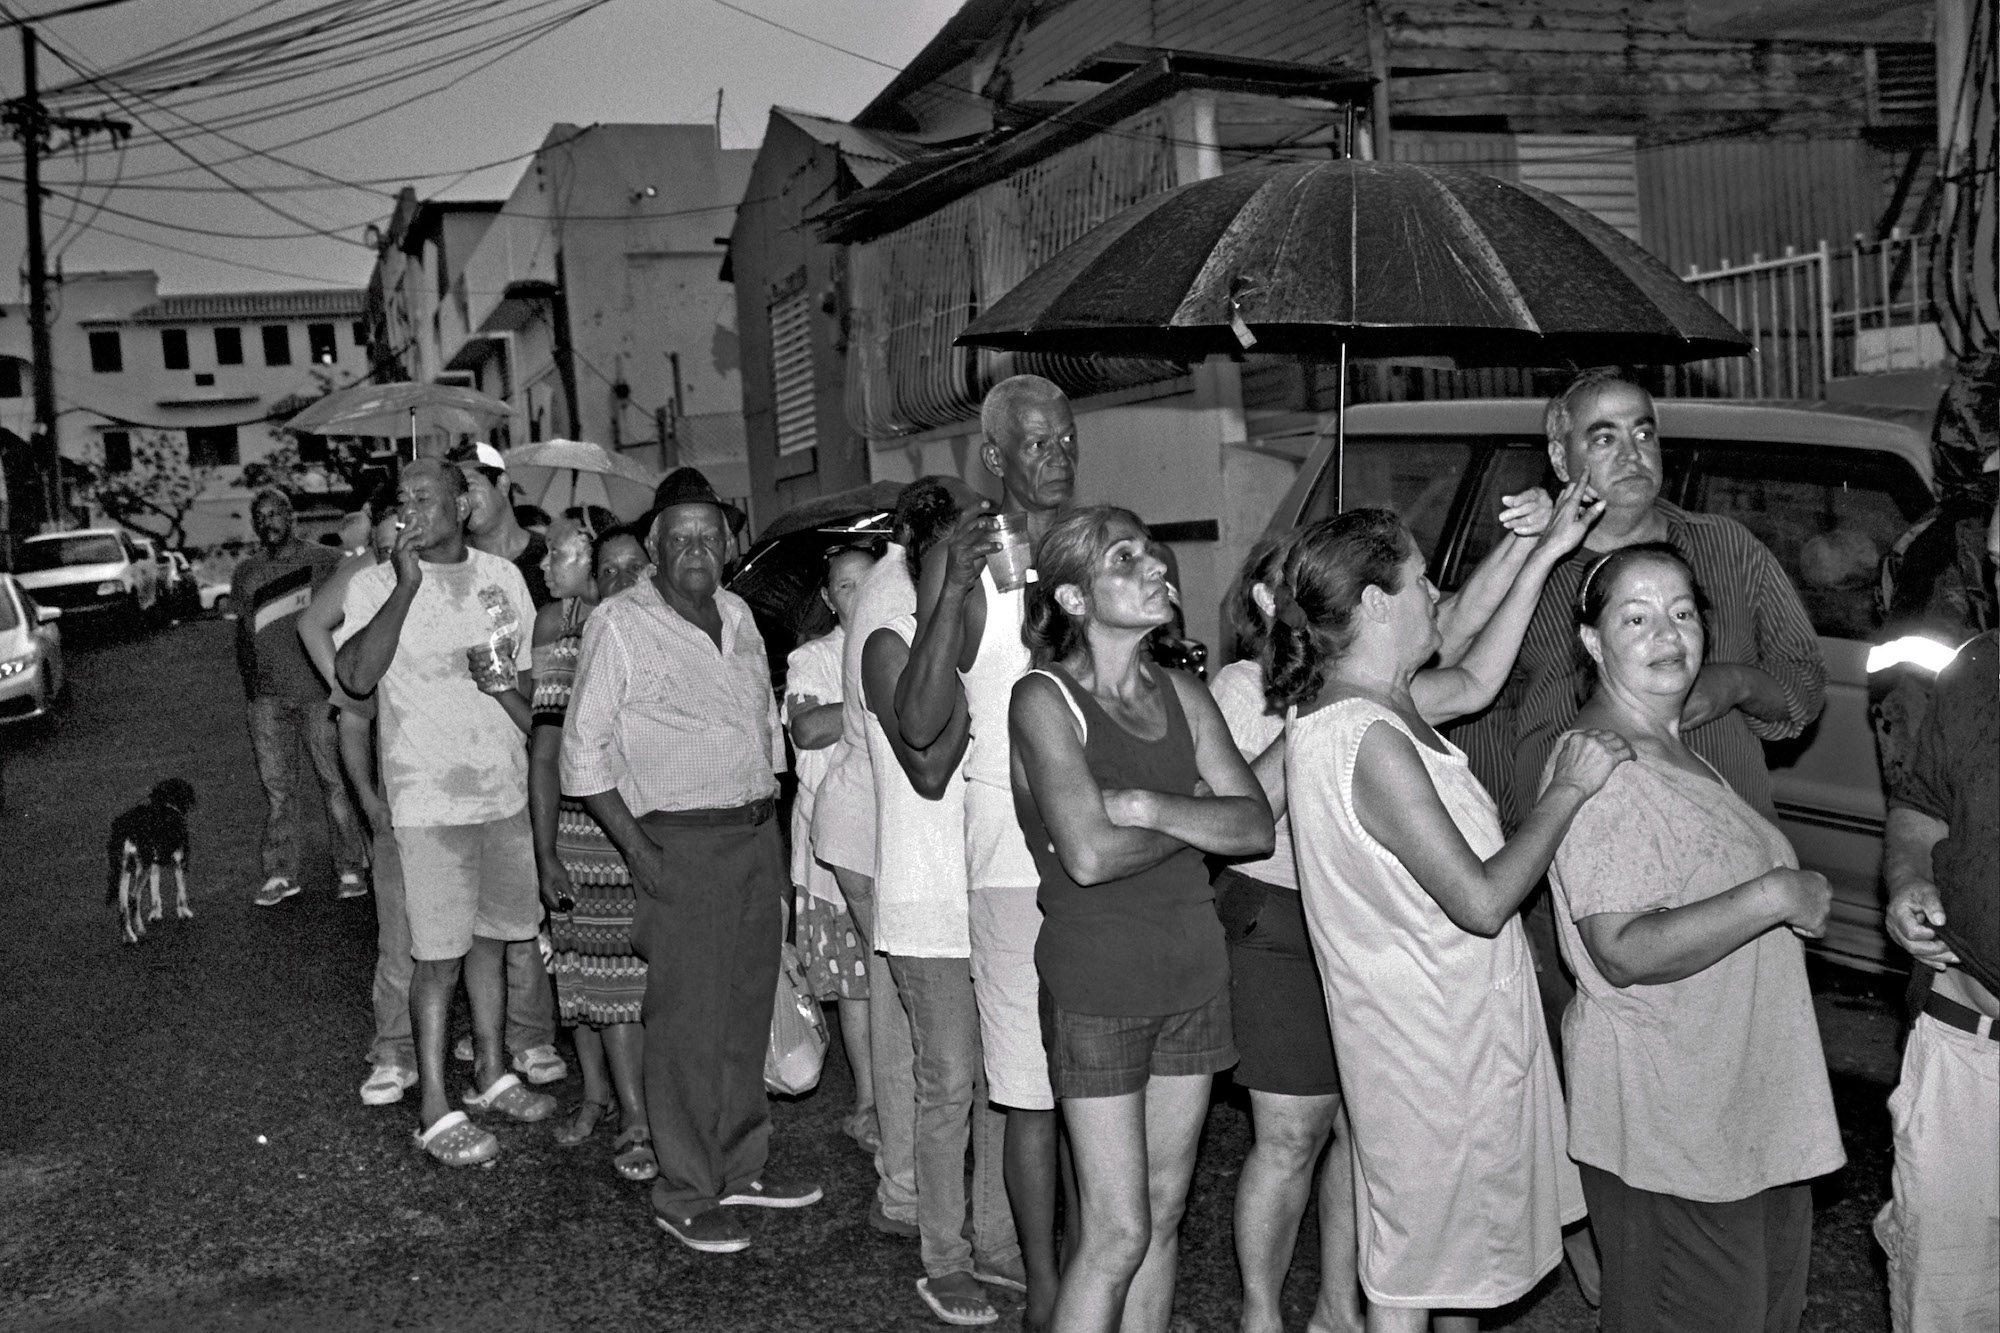 People lined up for hours one night in the rain to get food and water in Santurce, San Juan, P.R.